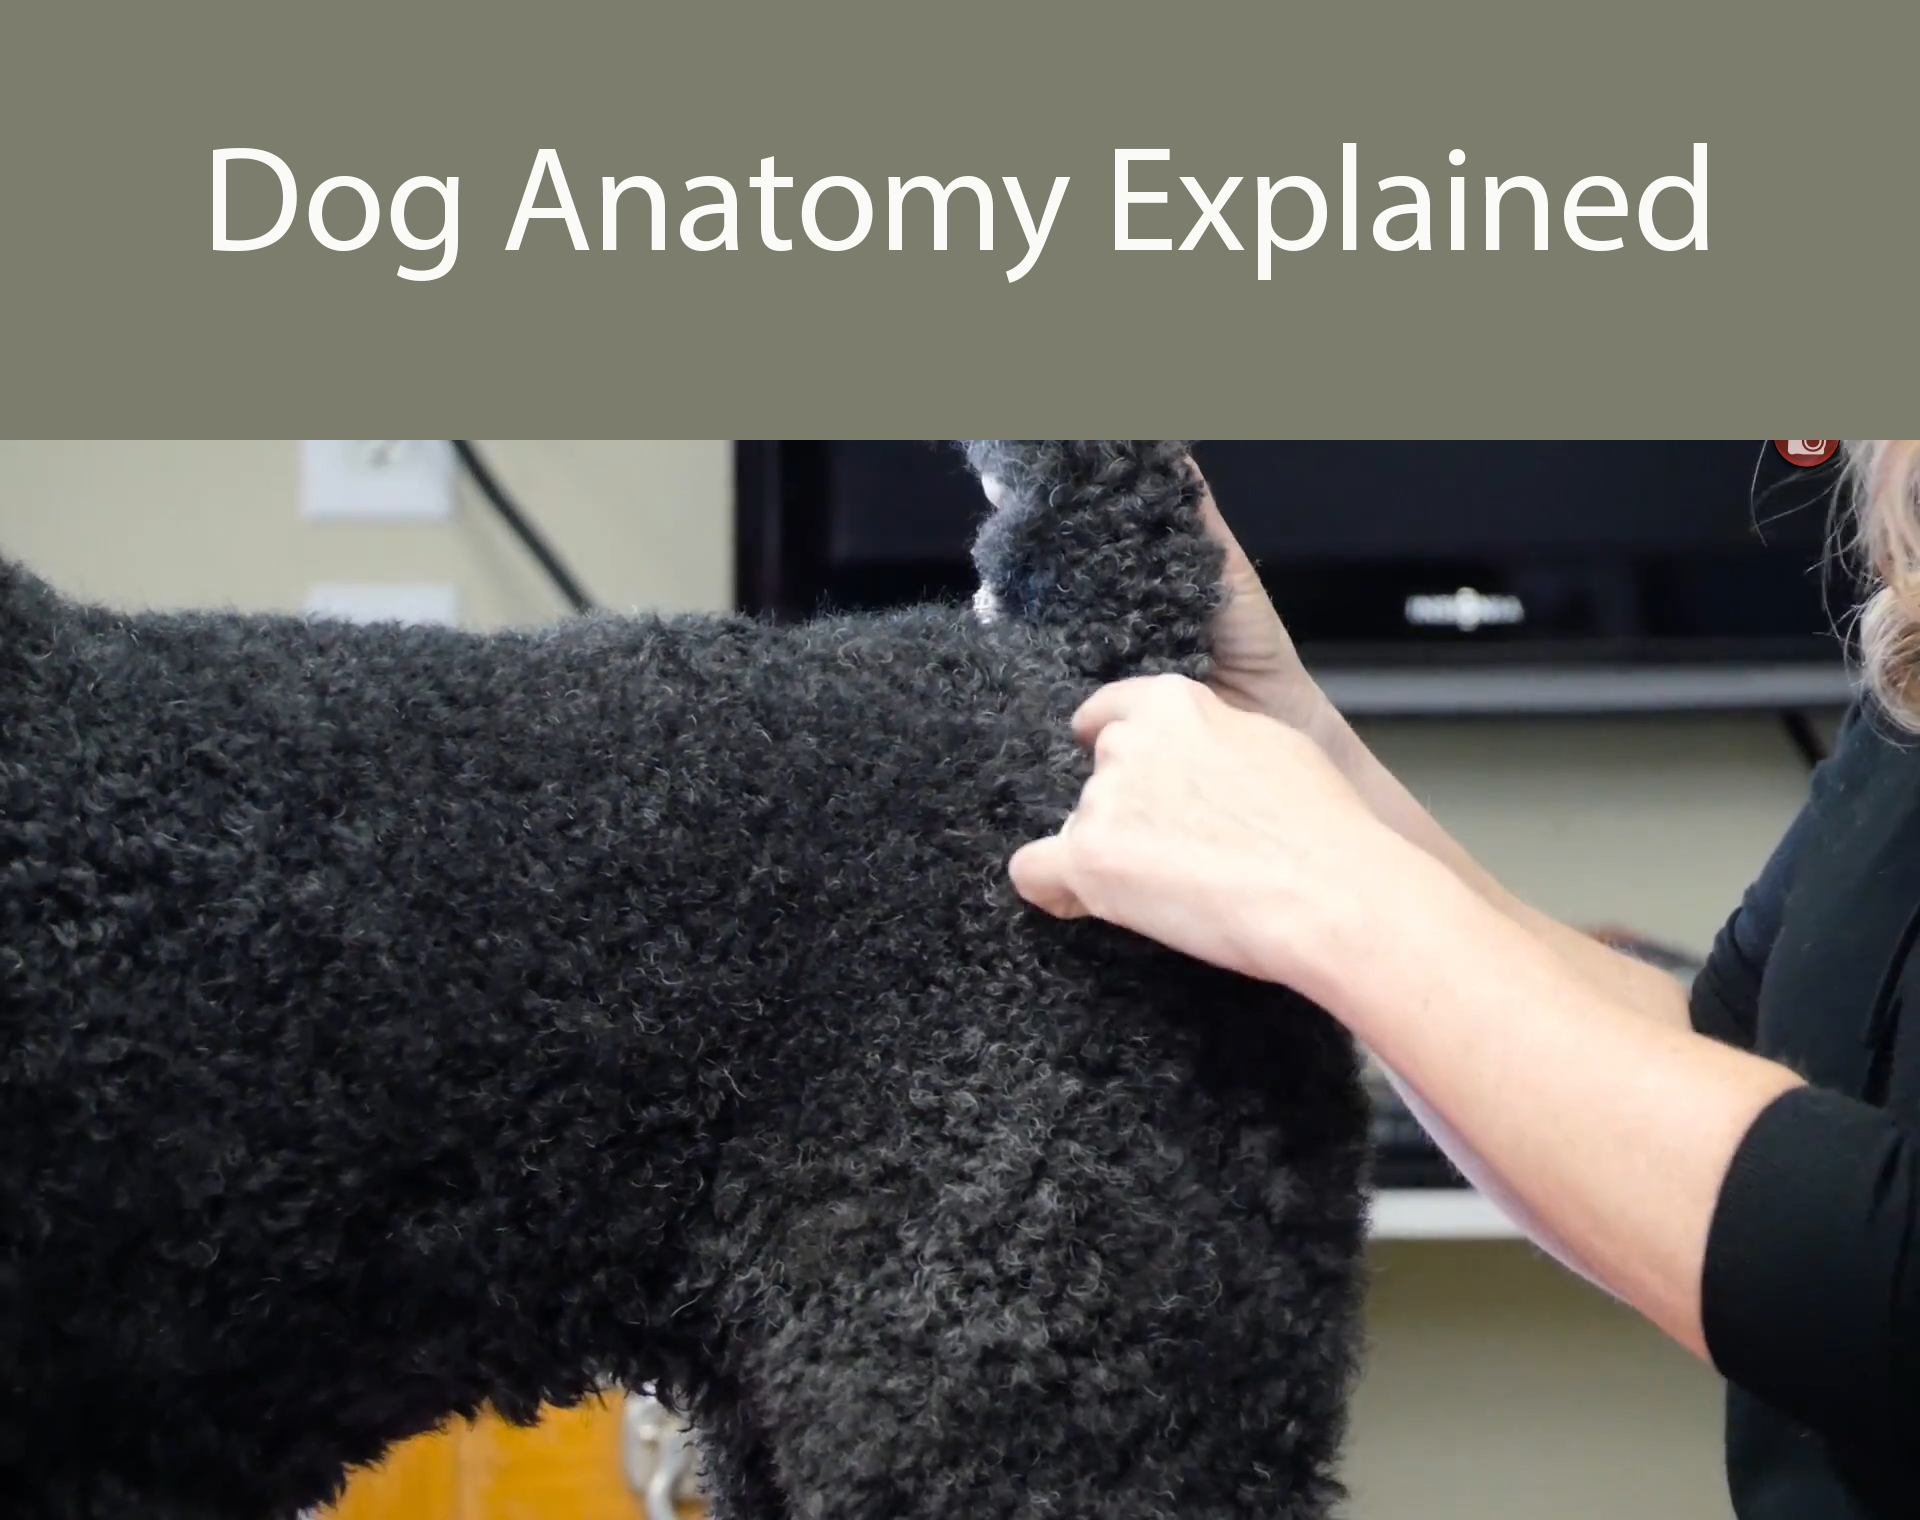 What You Need To Know About Dog Anatomy